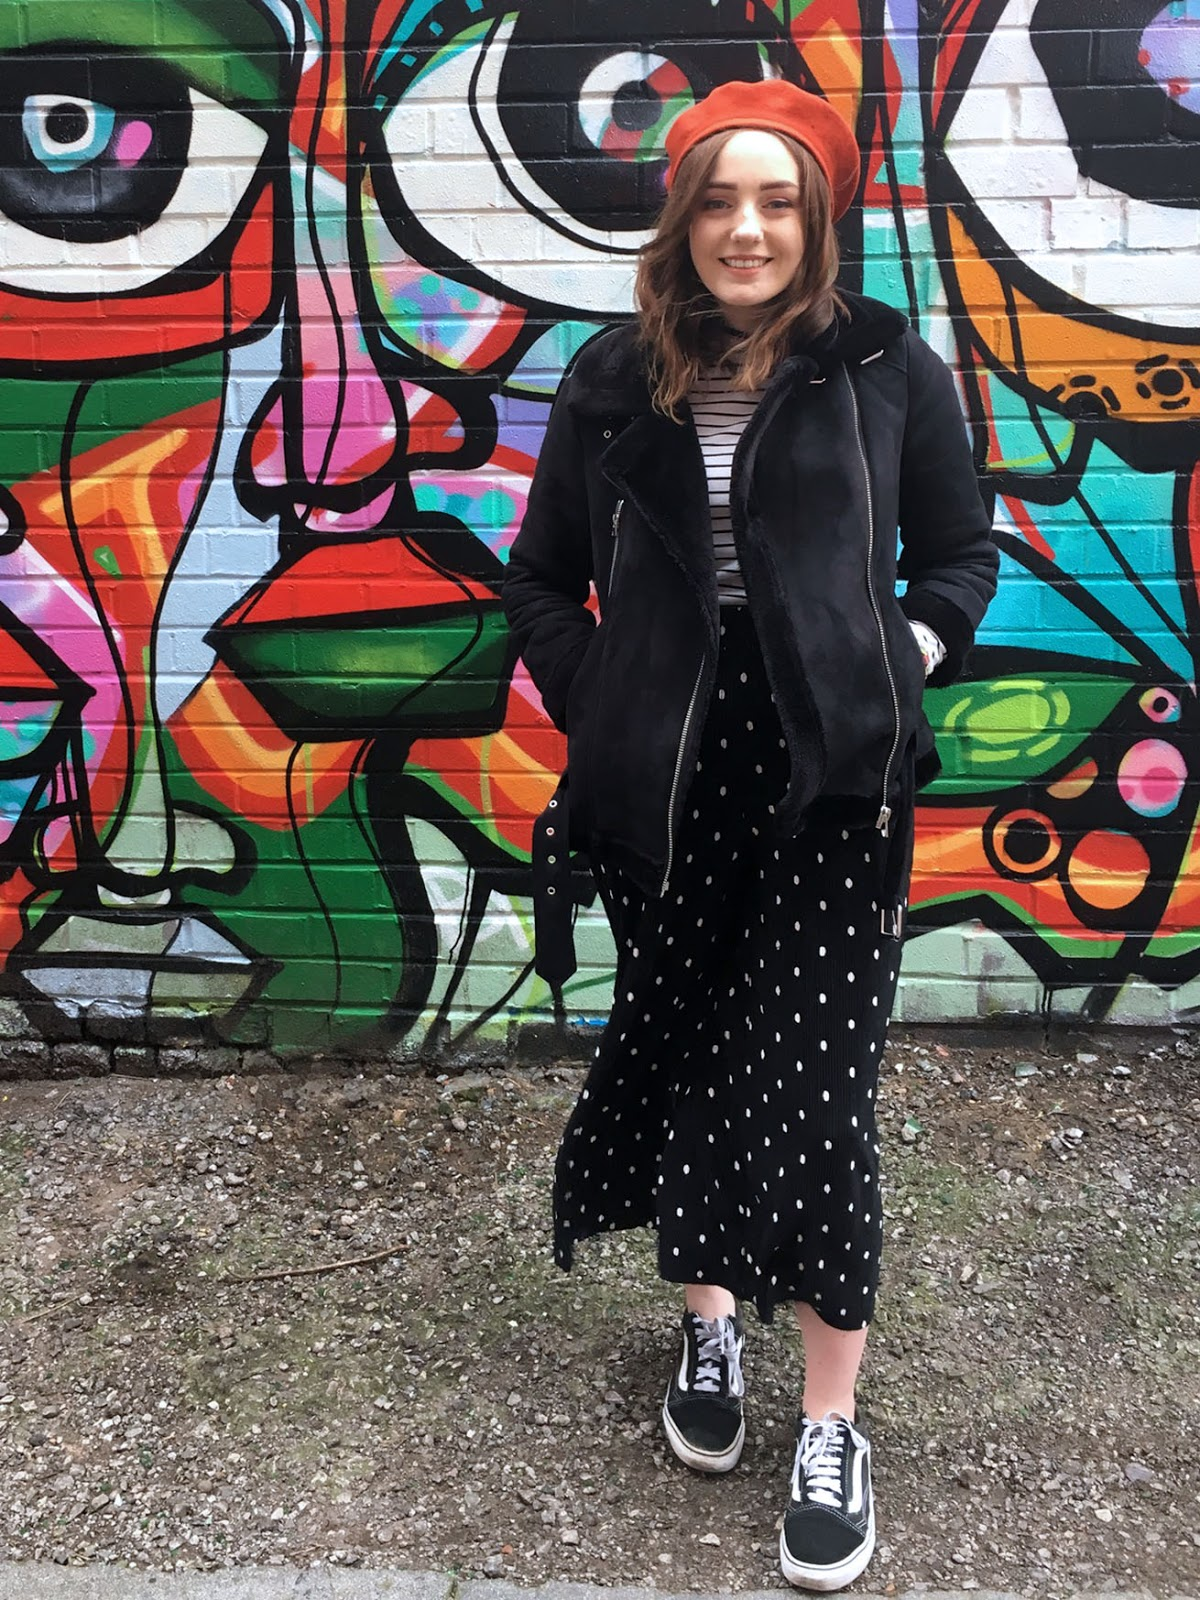 Outfit inspiration spring 2017, Liverpool street art, Liverpool fashion blogger